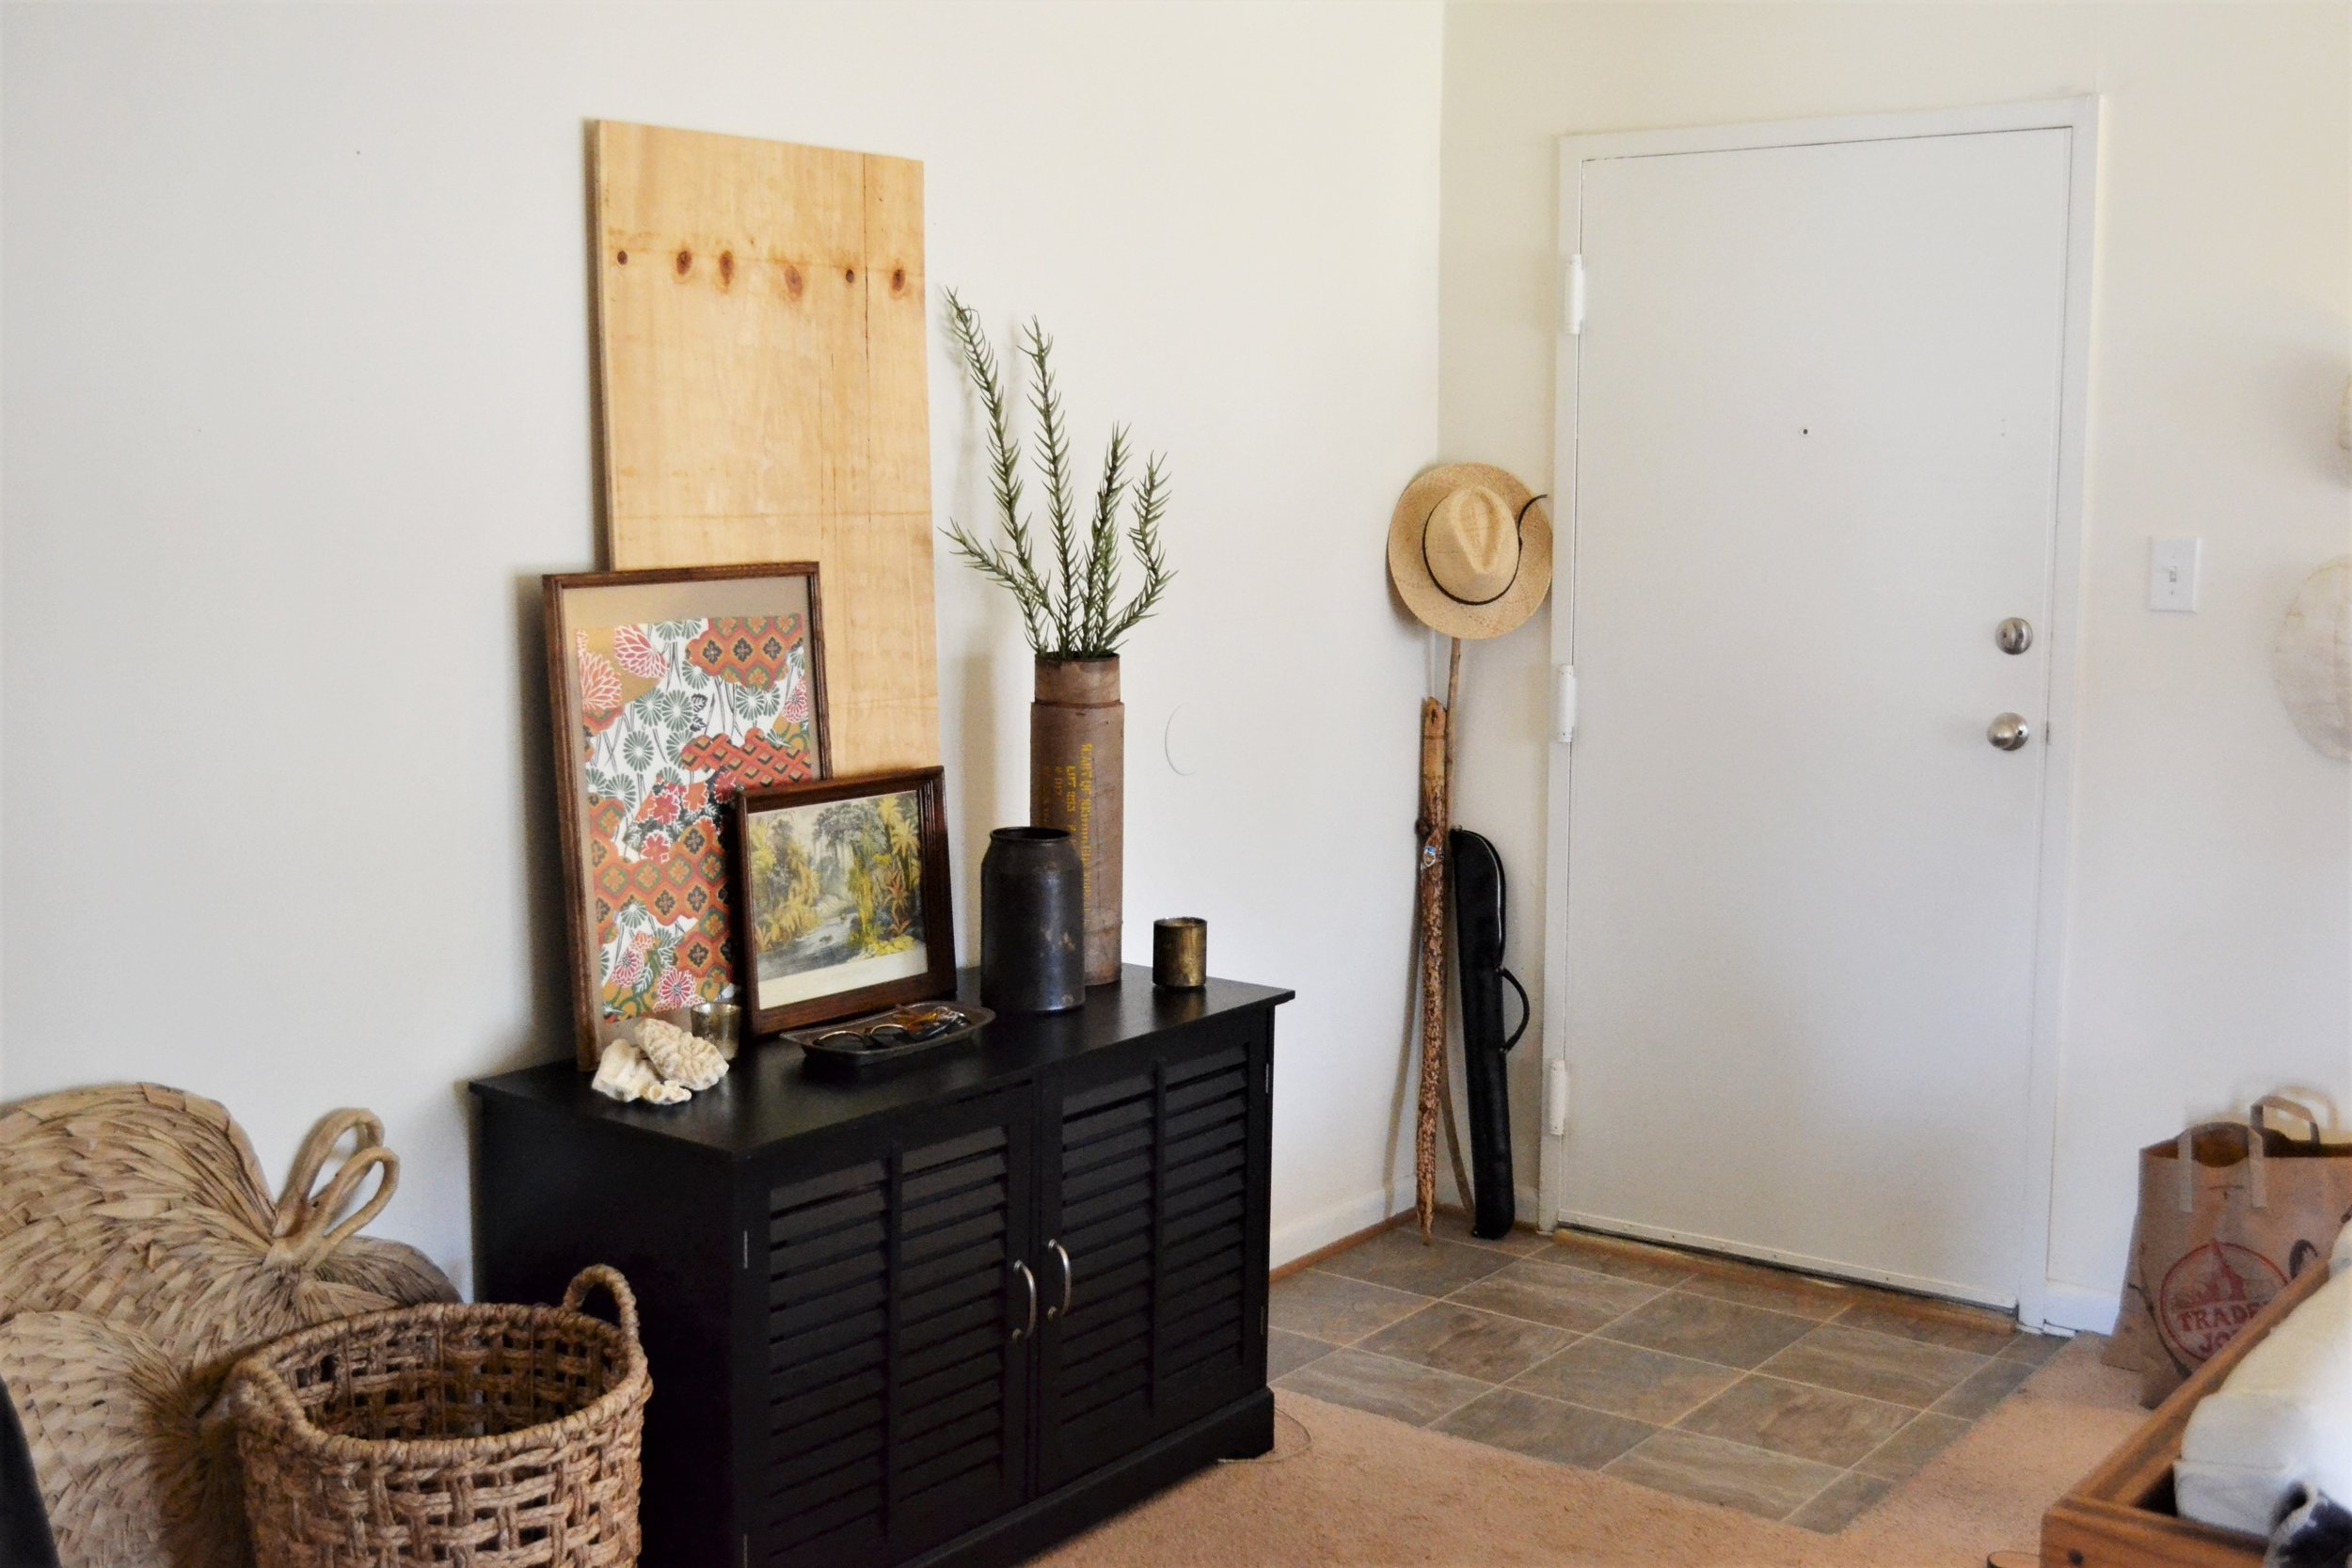 1 Entry Styled 3 Ways - Making Room for Peace 12.JPG